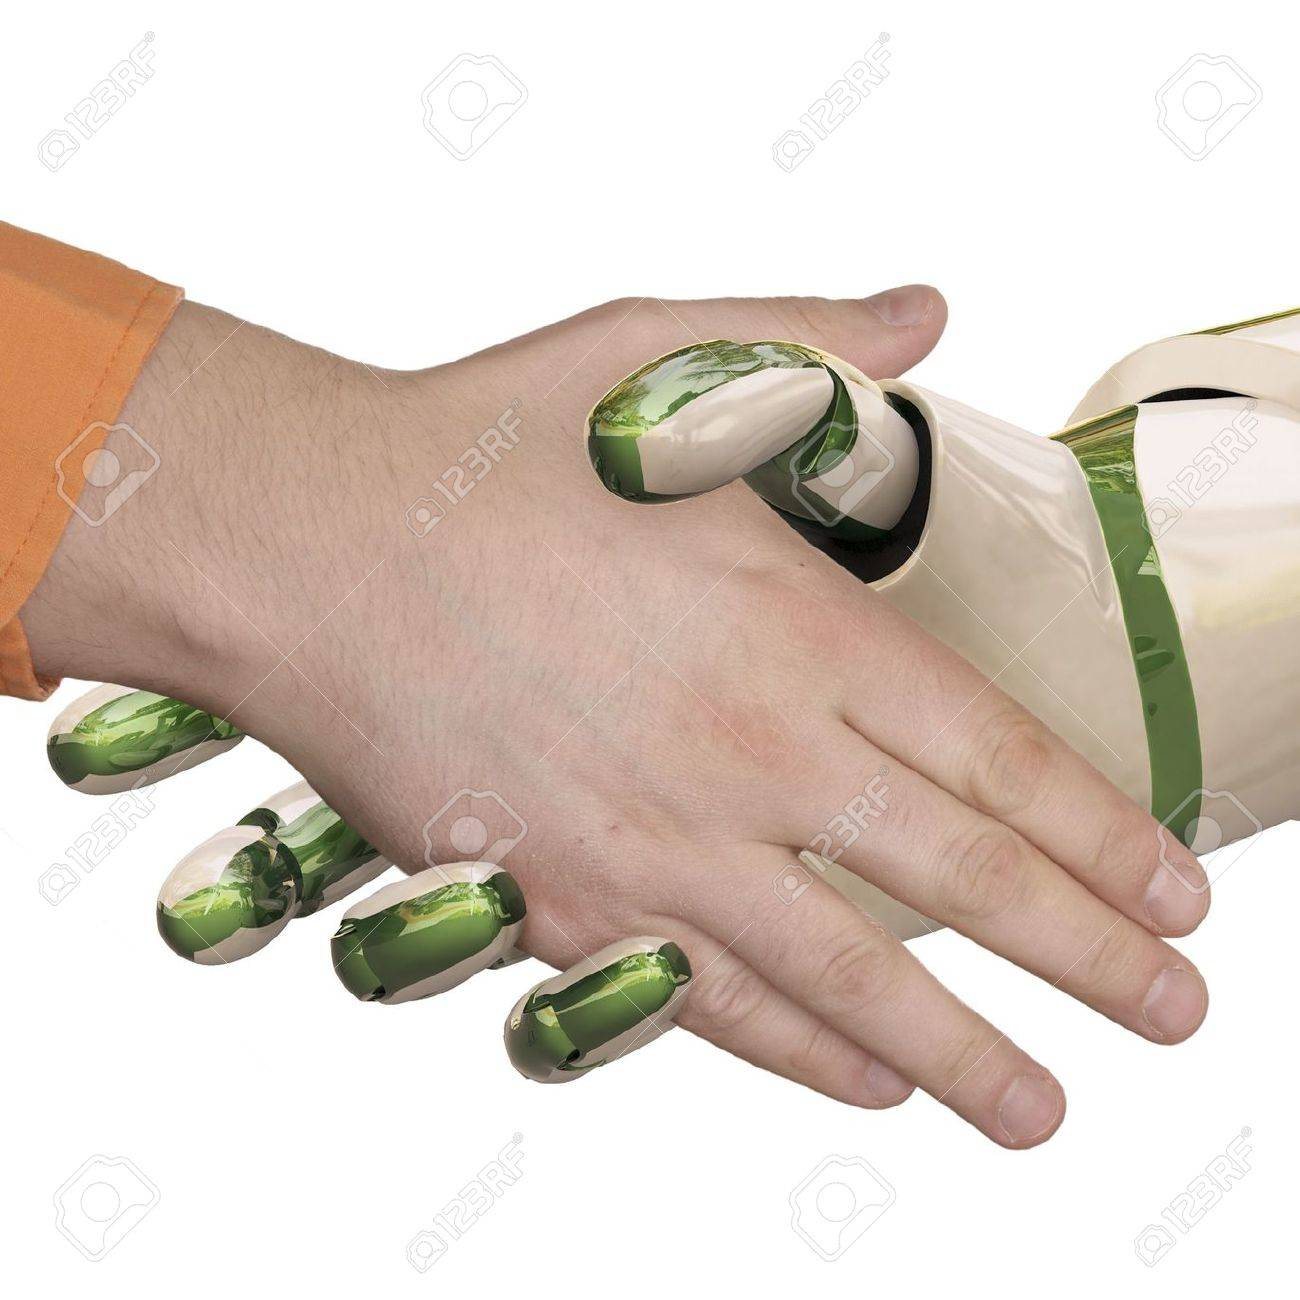 Robot and the man shake hands. Isolated on white. - 6681468